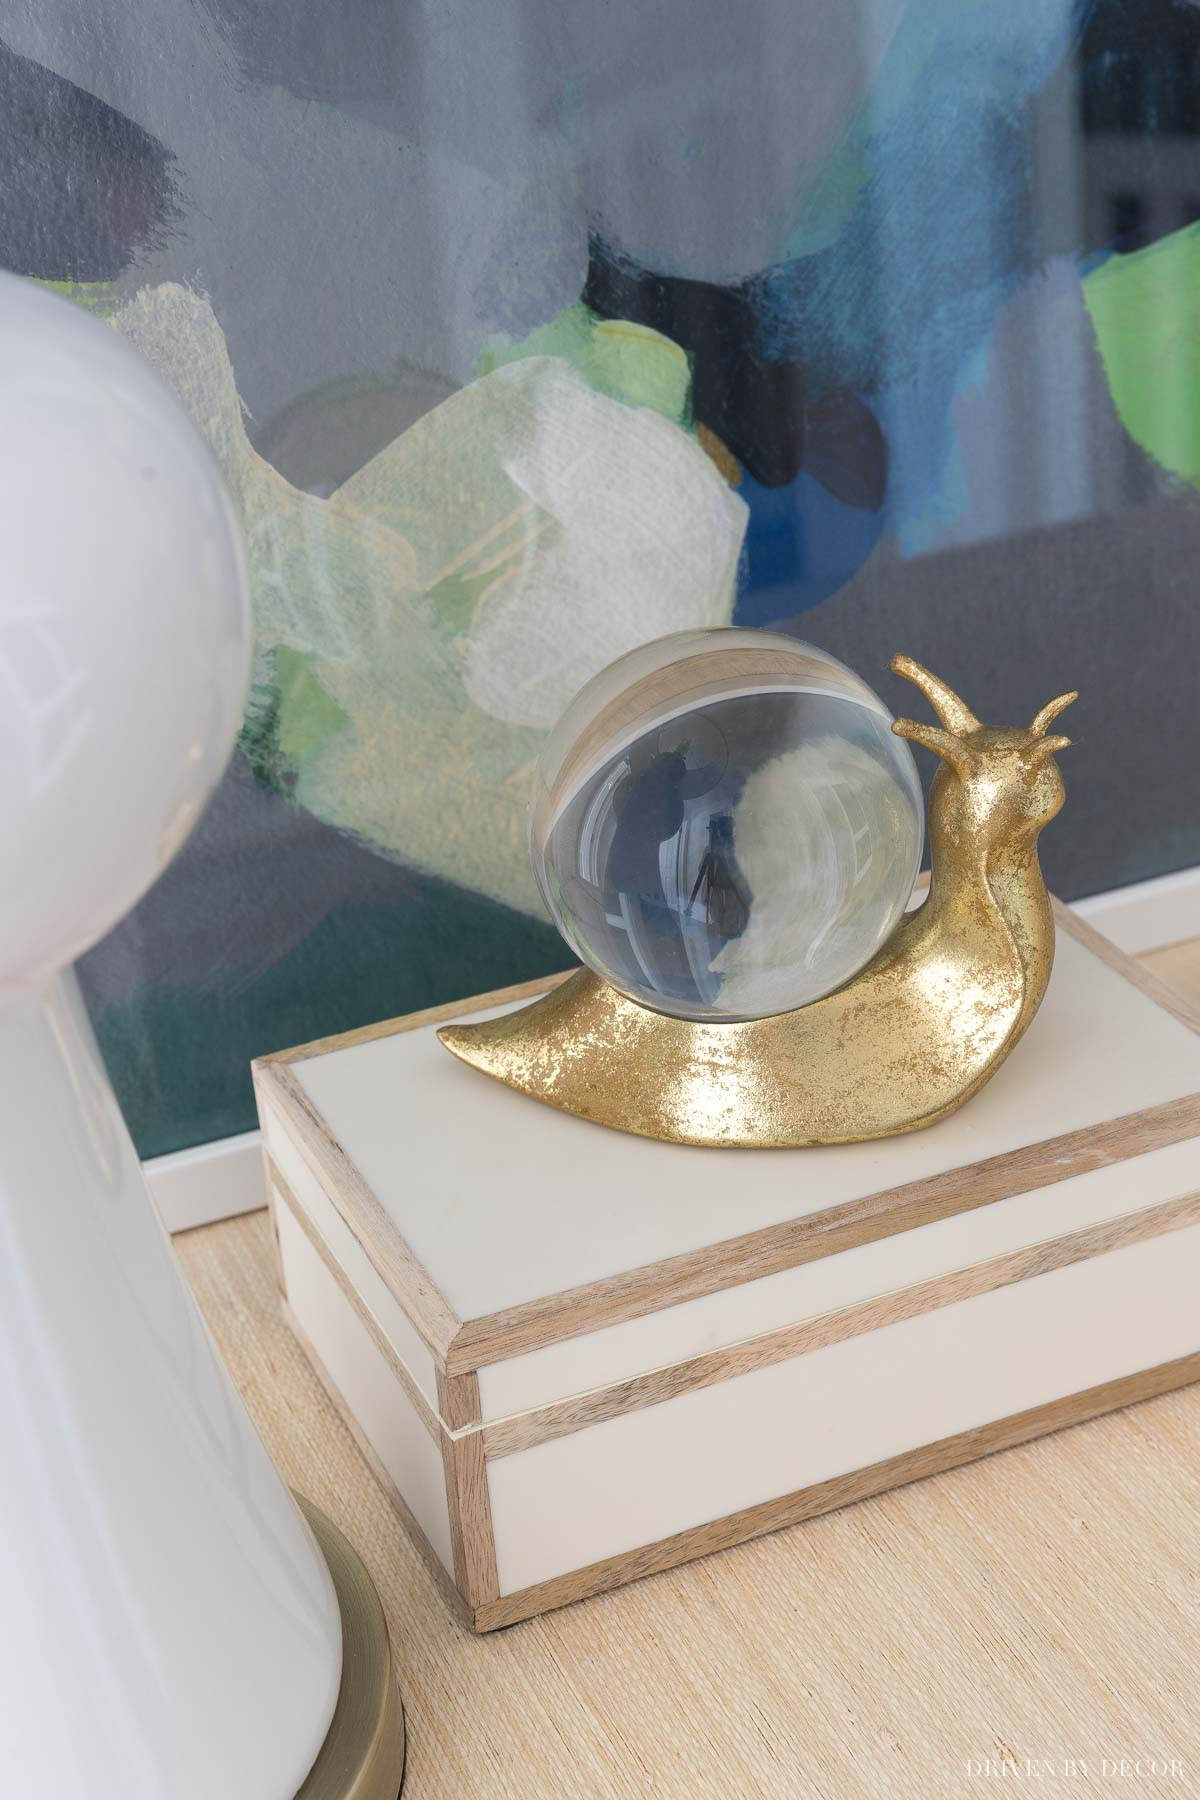 This decorative brass snail on my entryway console is one of my favorite accessories!